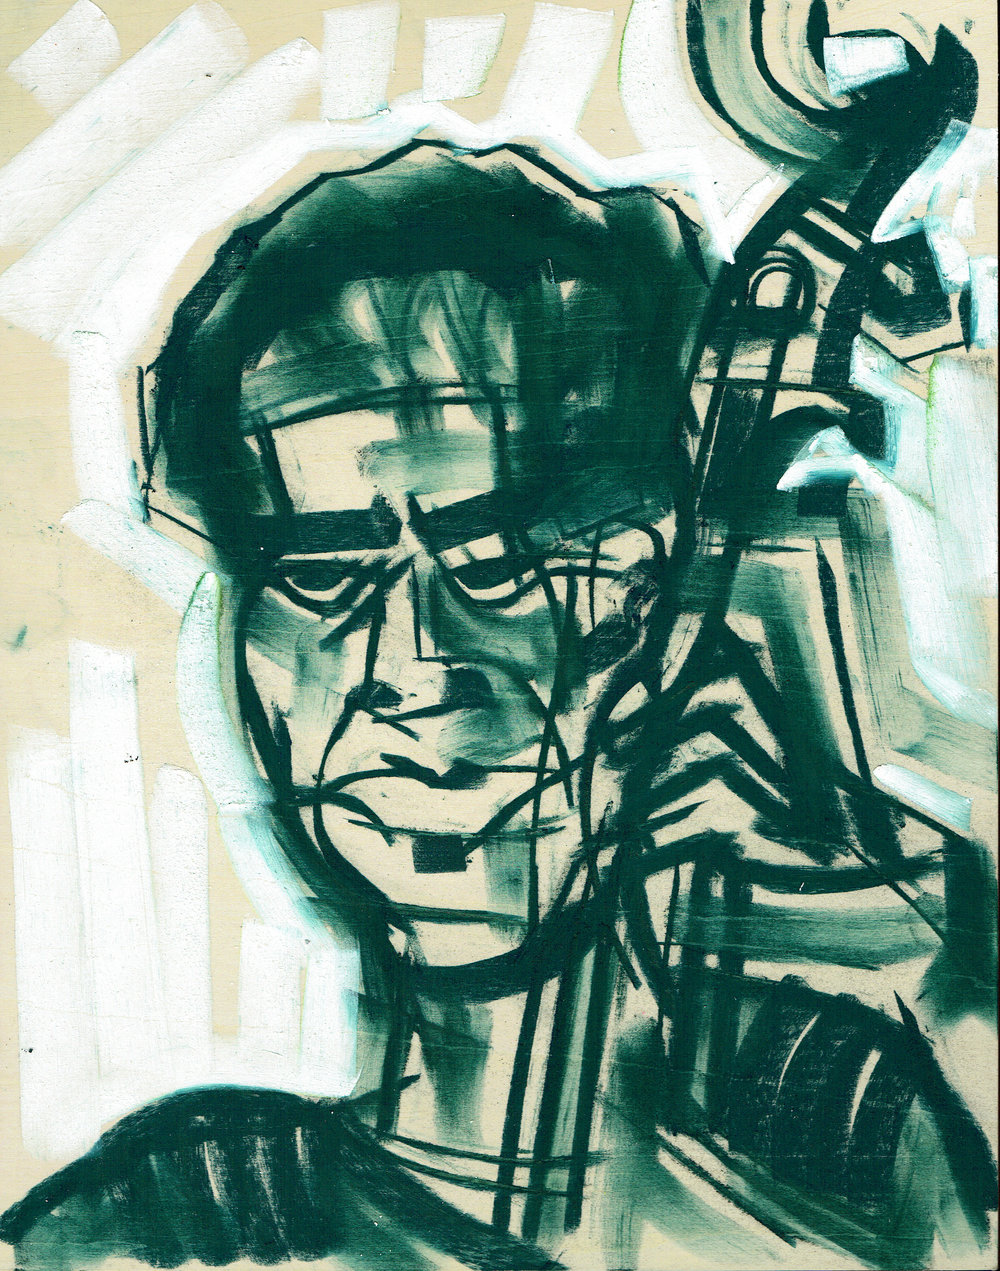 Jeremiah Hunt (depicted) plays for the Museum of Contemporary Art Chicago's Tuesdays on the Terrace series with the Xavier Breaker Coalition. - The MCA has been kind enough to publish Jazz Occurrence blogs and encourage this artists' #livepainting adventures.